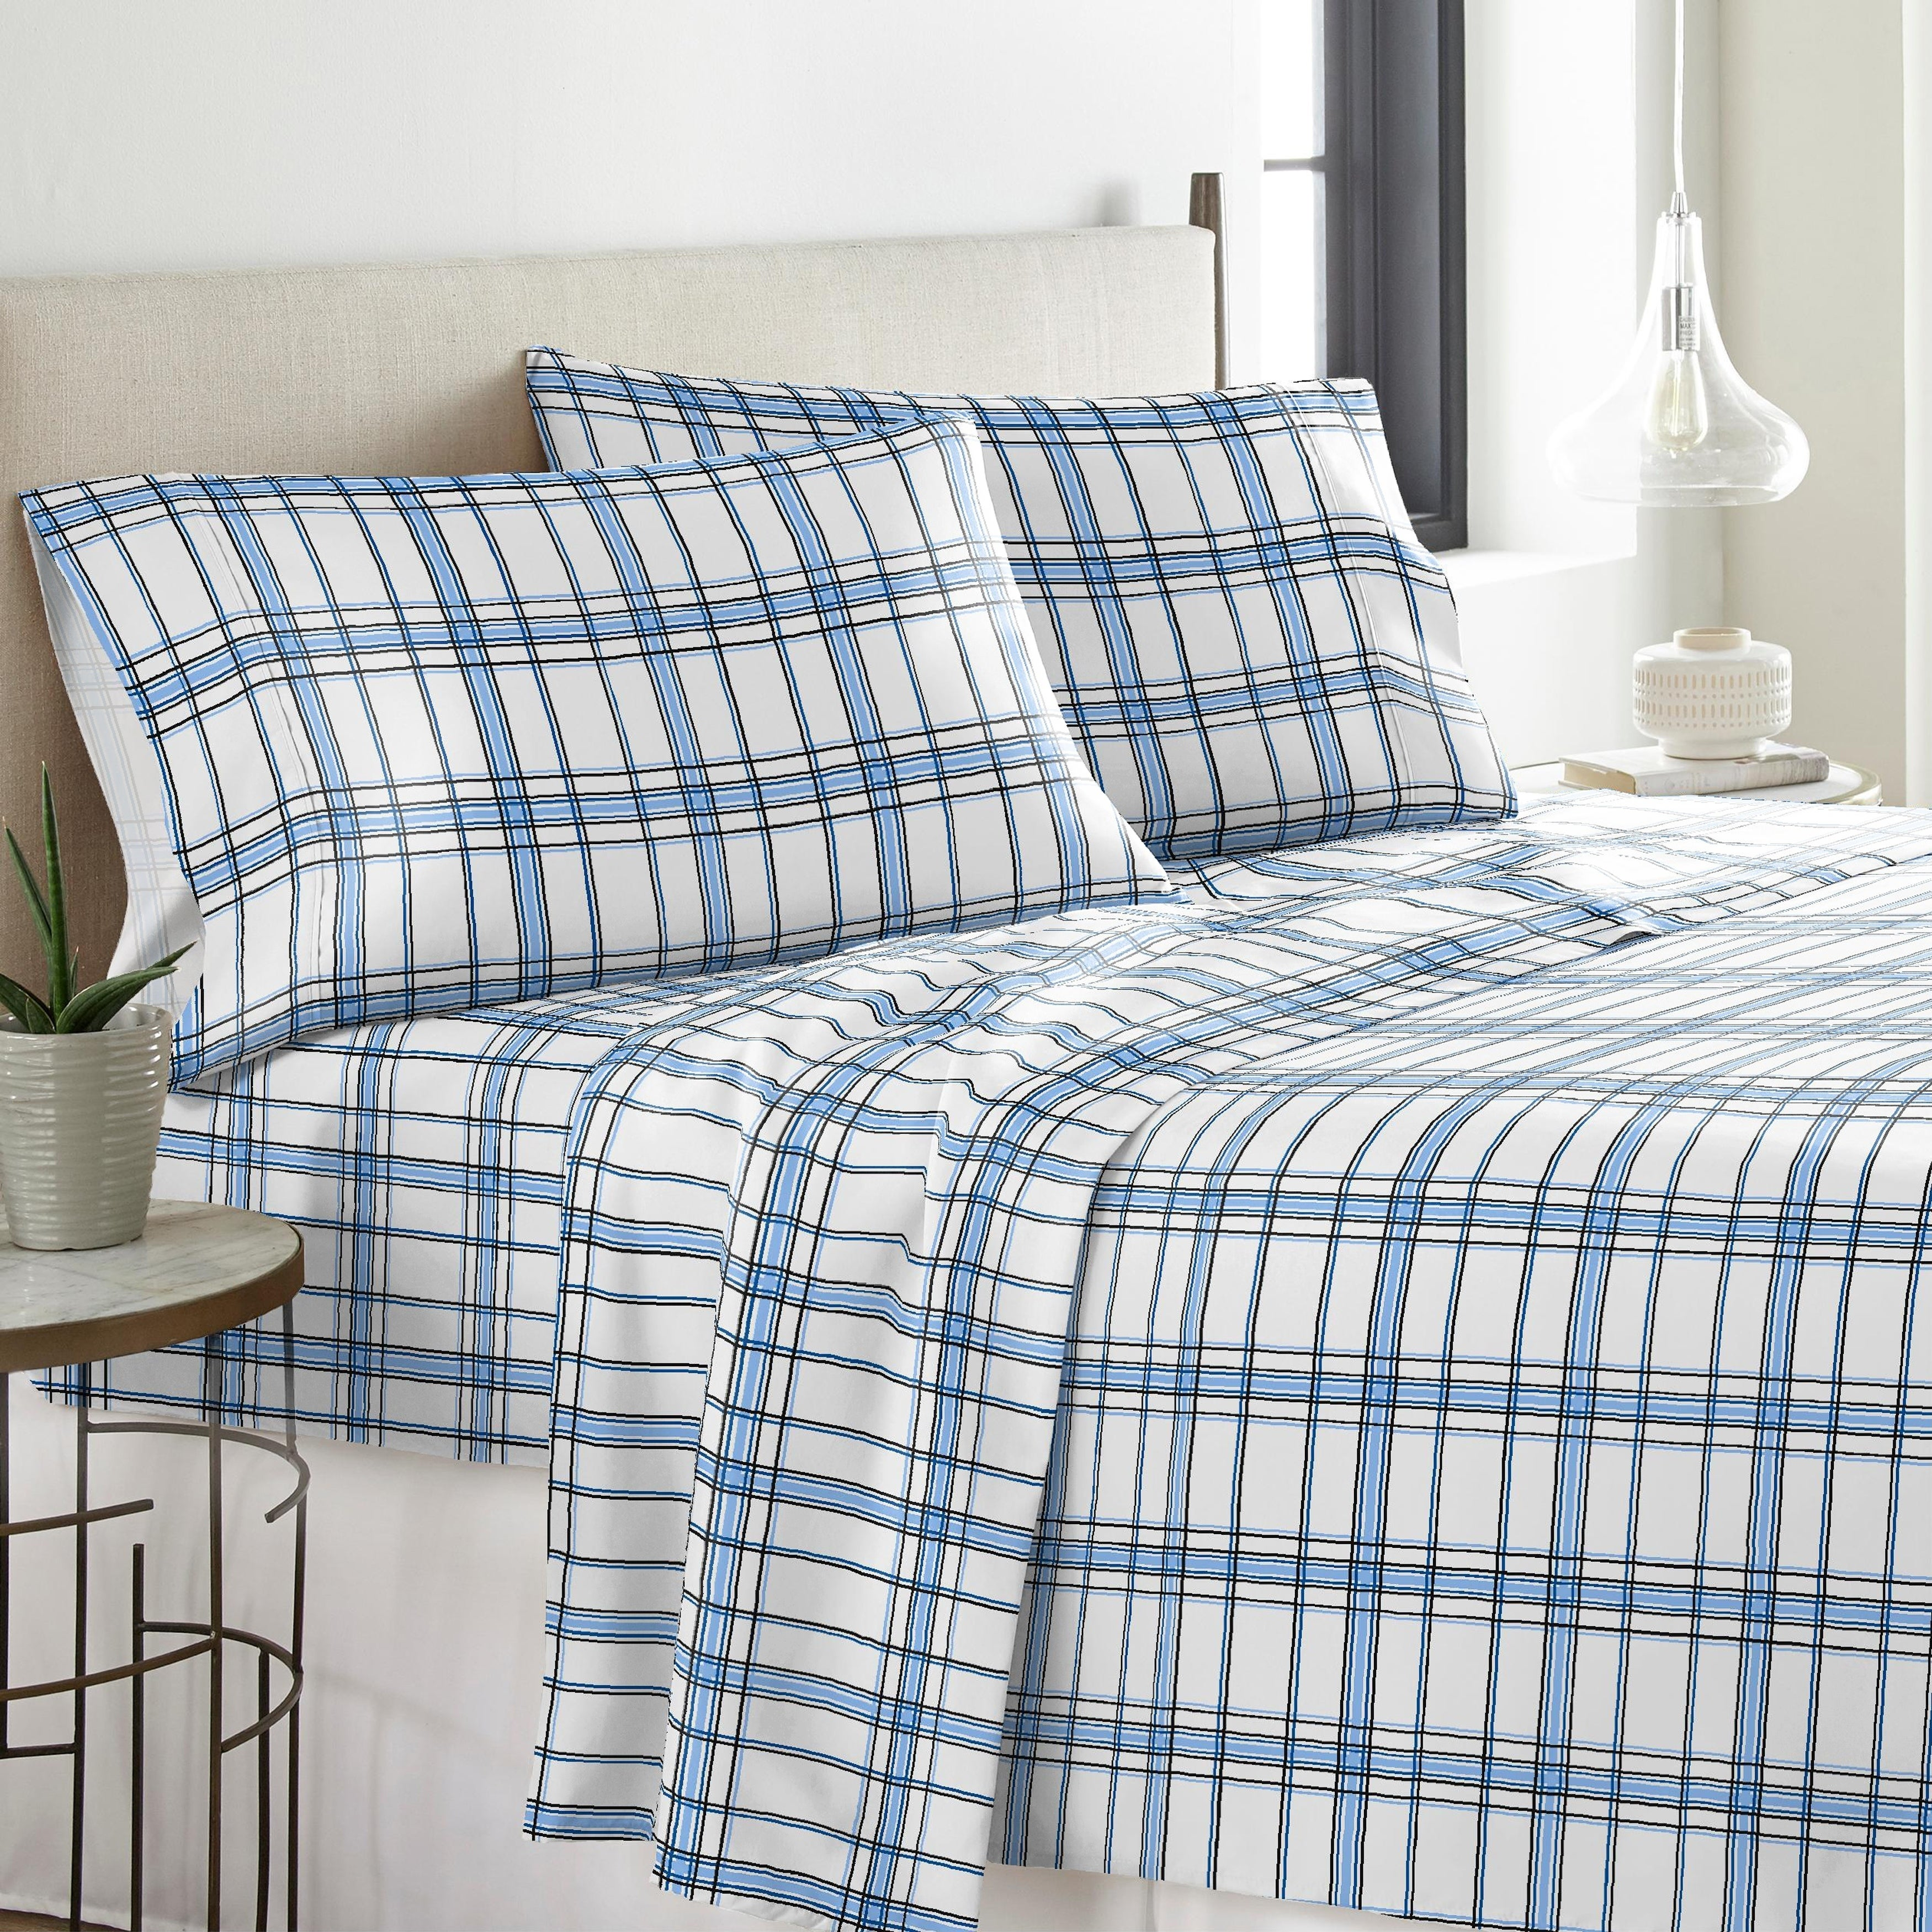 Solid Or Print Cotton Heavyweight Flannel Sheet Set Free Shipping On Orders Over 45 6362355